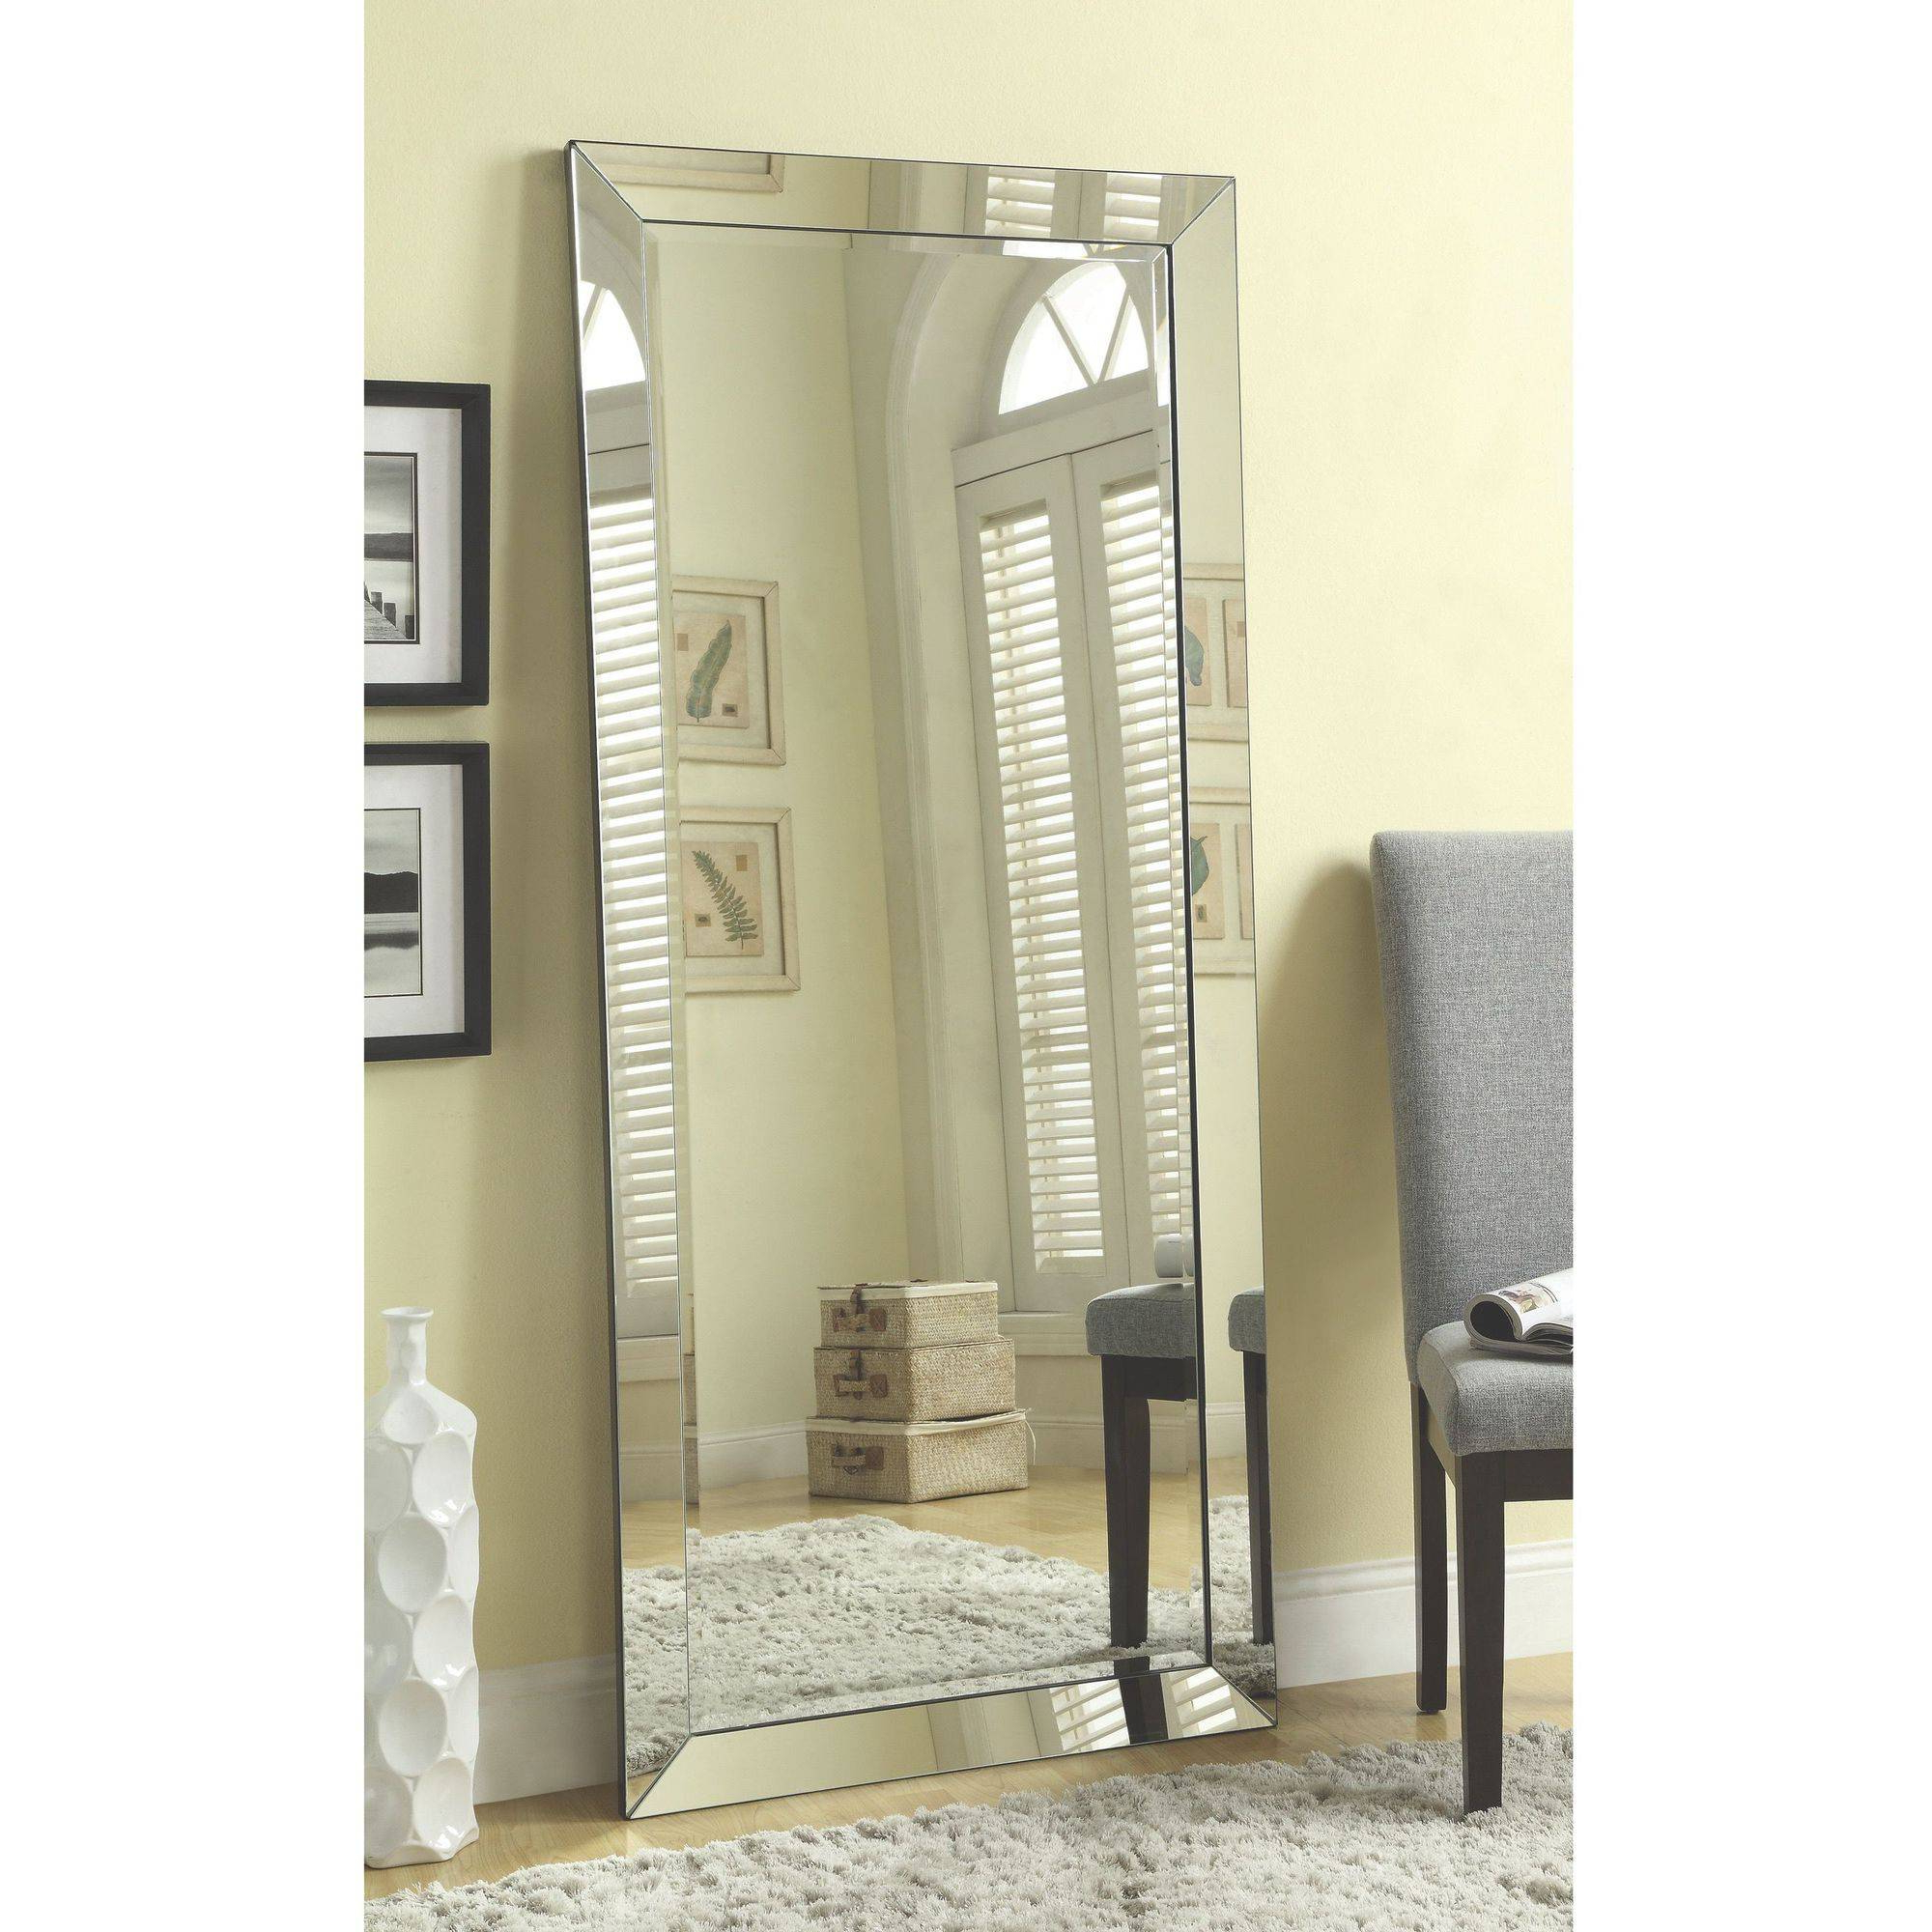 34 Most Unbeatable Long Wall Mirrors Mirror No Frame Large Throughout Newest No Frame Wall Mirrors (Gallery 11 of 20)